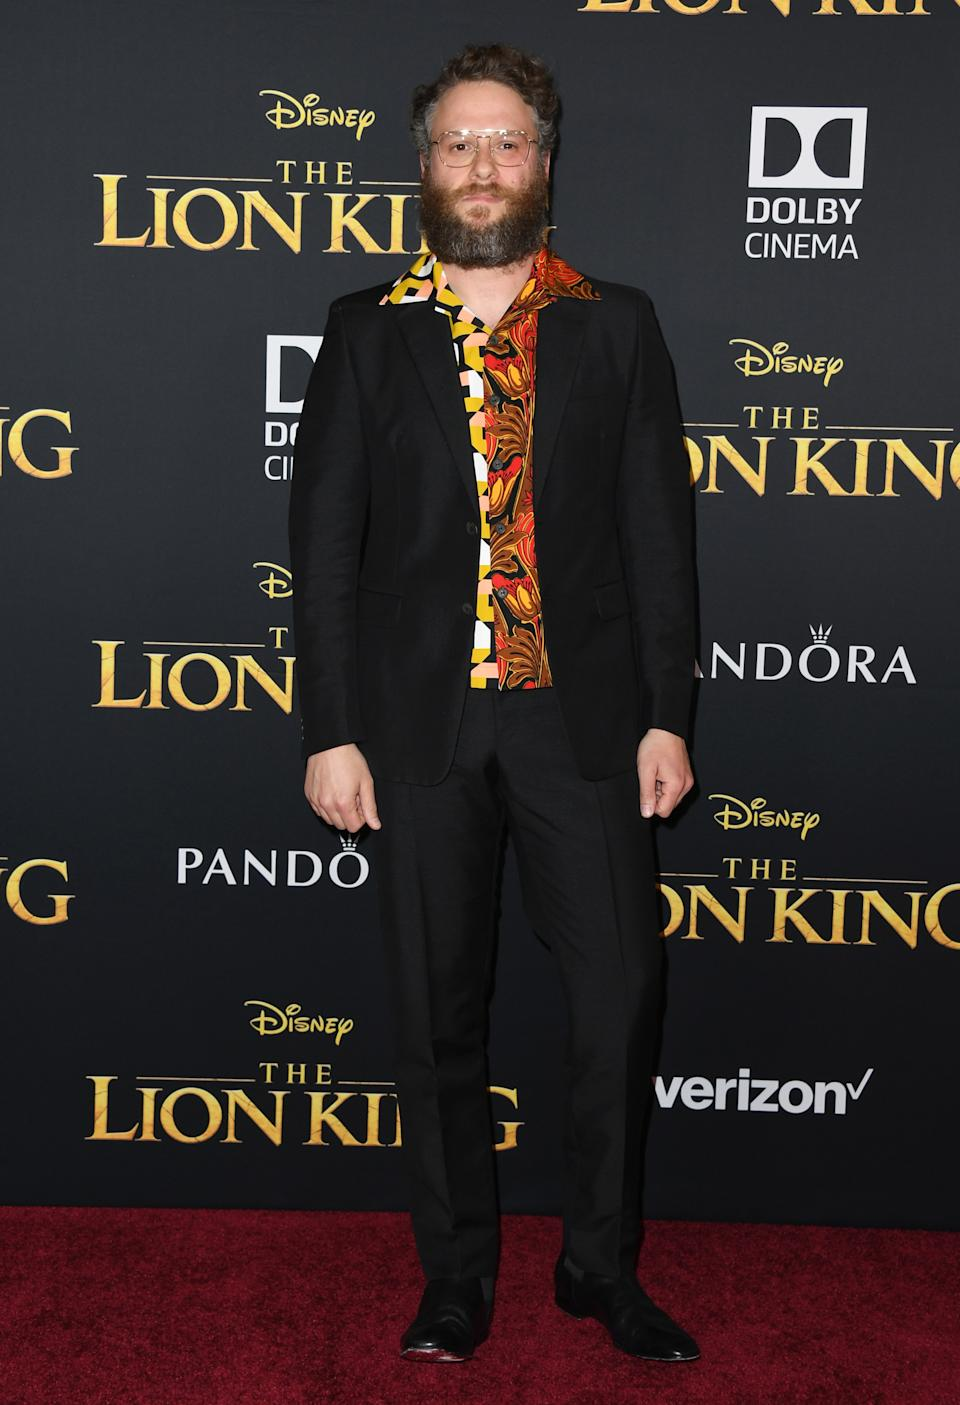 """HOLLYWOOD, CALIFORNIA - JULY 09:  Seth Rogen attends the Premiere Of Disney's """"The Lion King"""" at Dolby Theatre on July 09, 2019 in Hollywood, California. (Photo by Jon Kopaloff/FilmMagic)"""